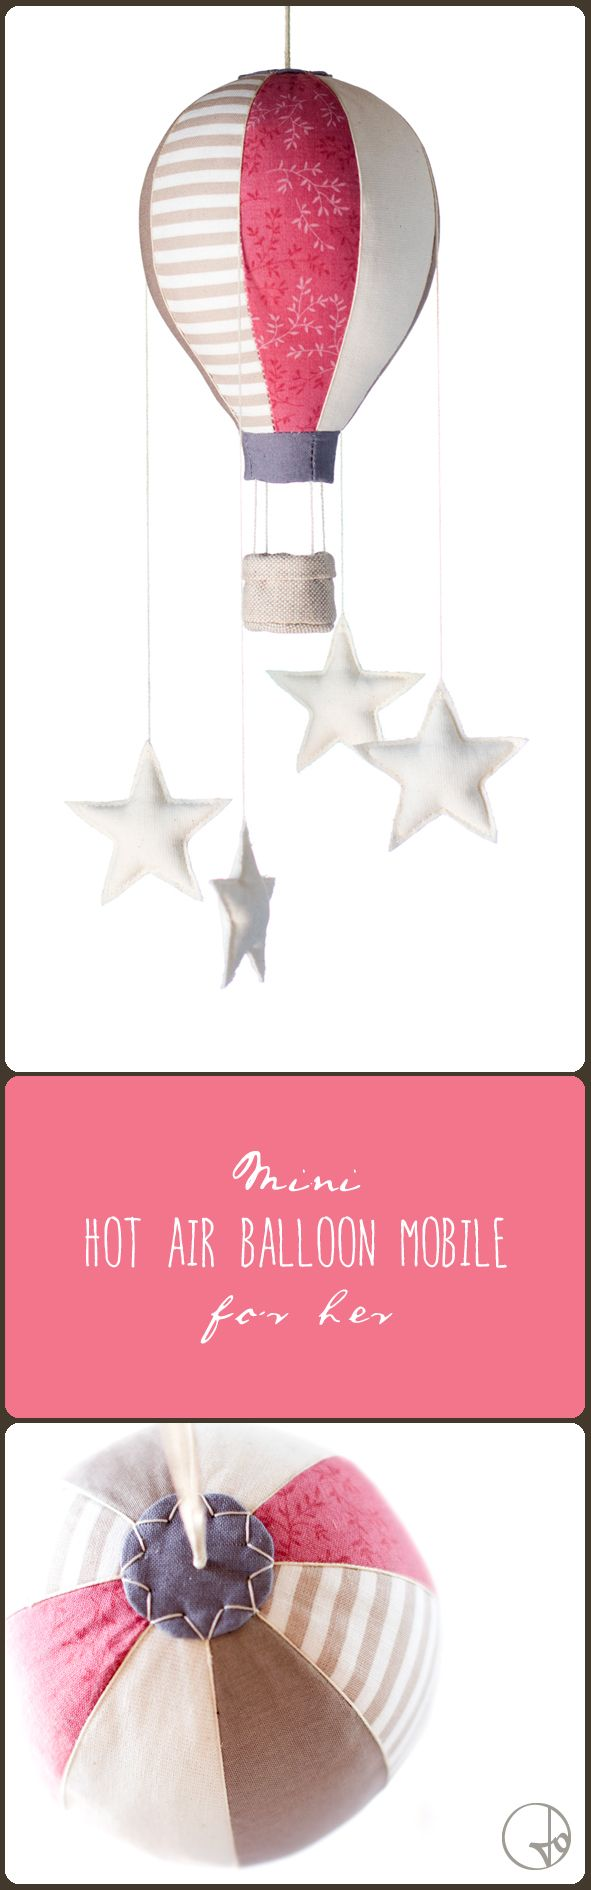 Mini hot air balloon mobile with four little stars for her. A lovely nursery decor to hang over the crib of your baby! By Jo handmade design #mobile #baby #hotairballoon